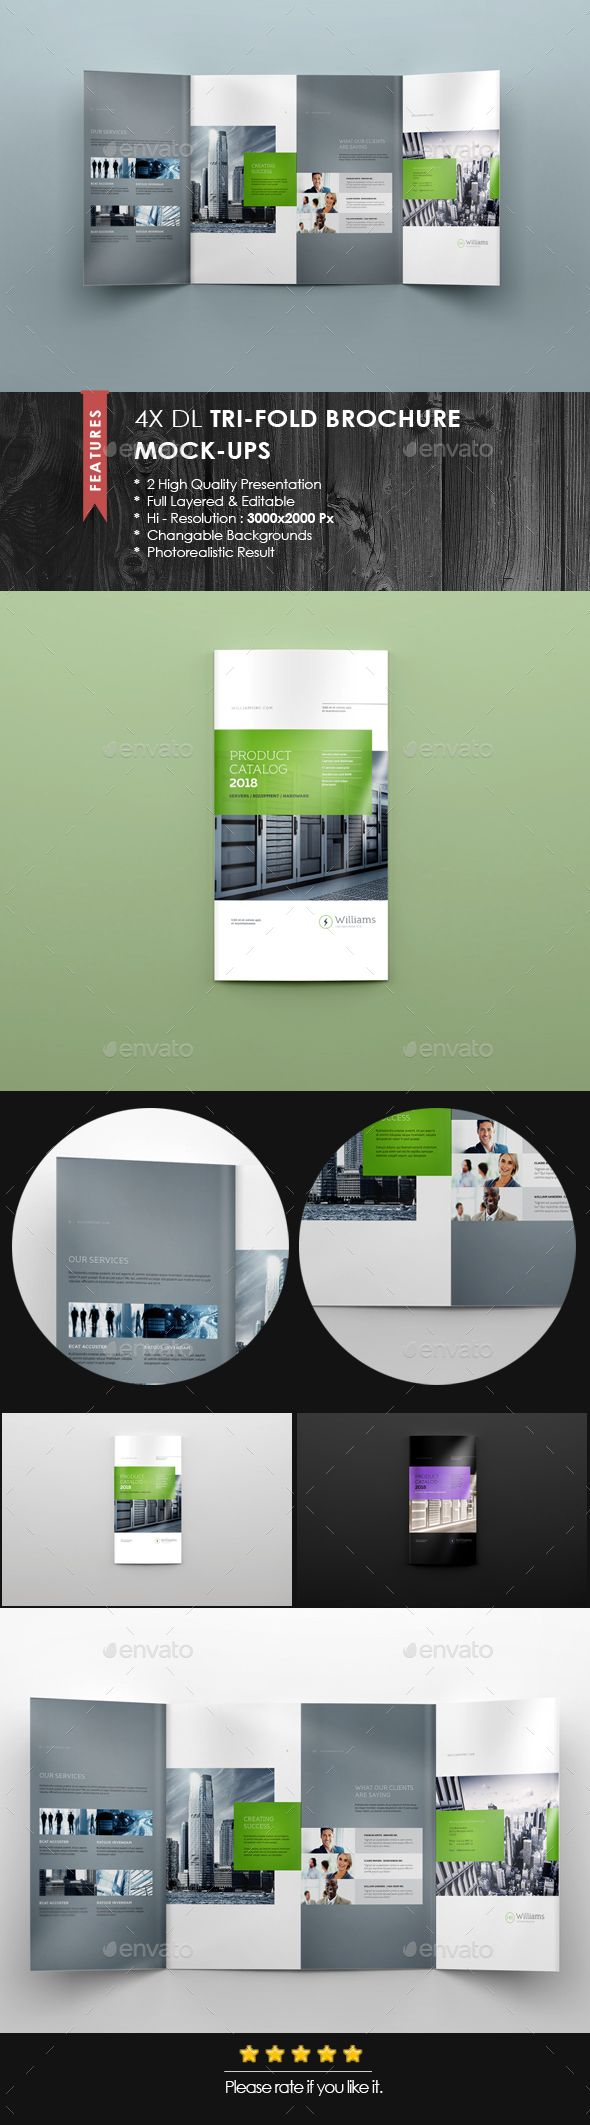 Xdl Double Gate Fold Brochure MockUp   Mockup Brochures And